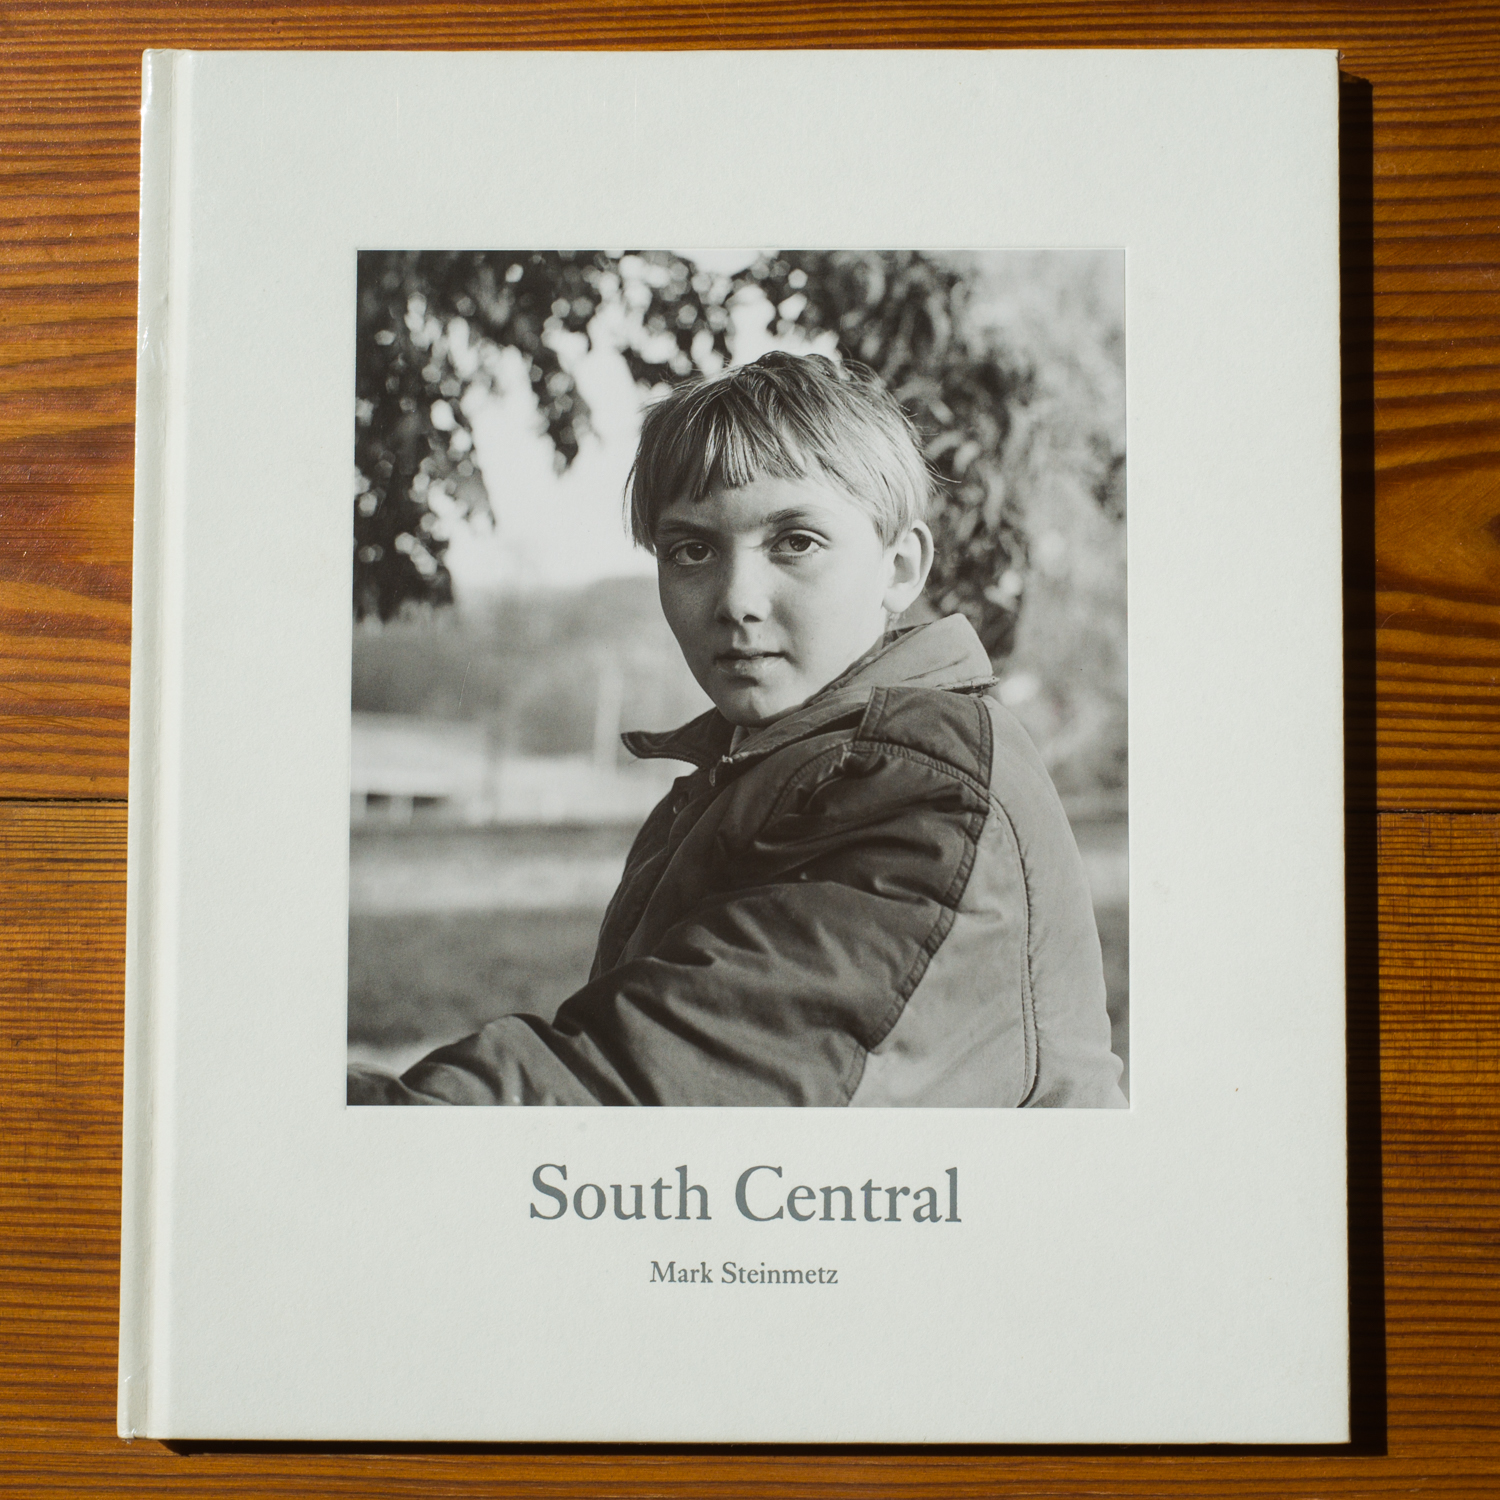 South Central (2007)